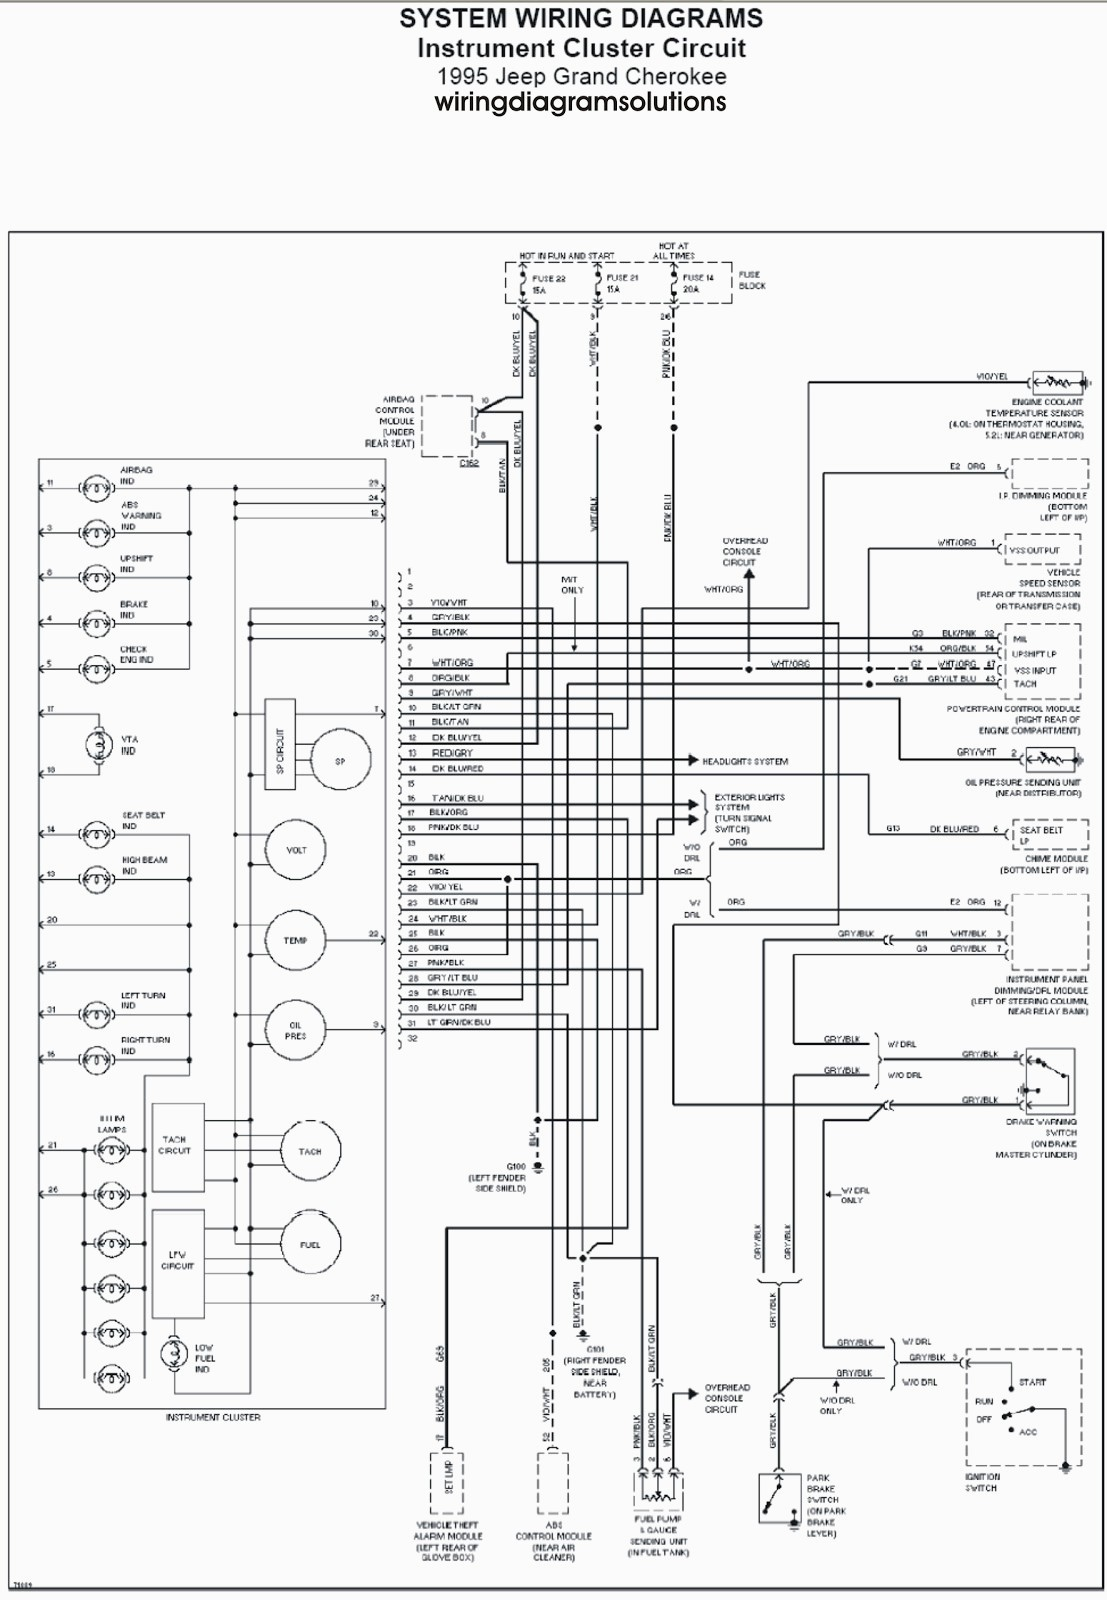 Radio Wiring Diagram For Jeep Cherokee